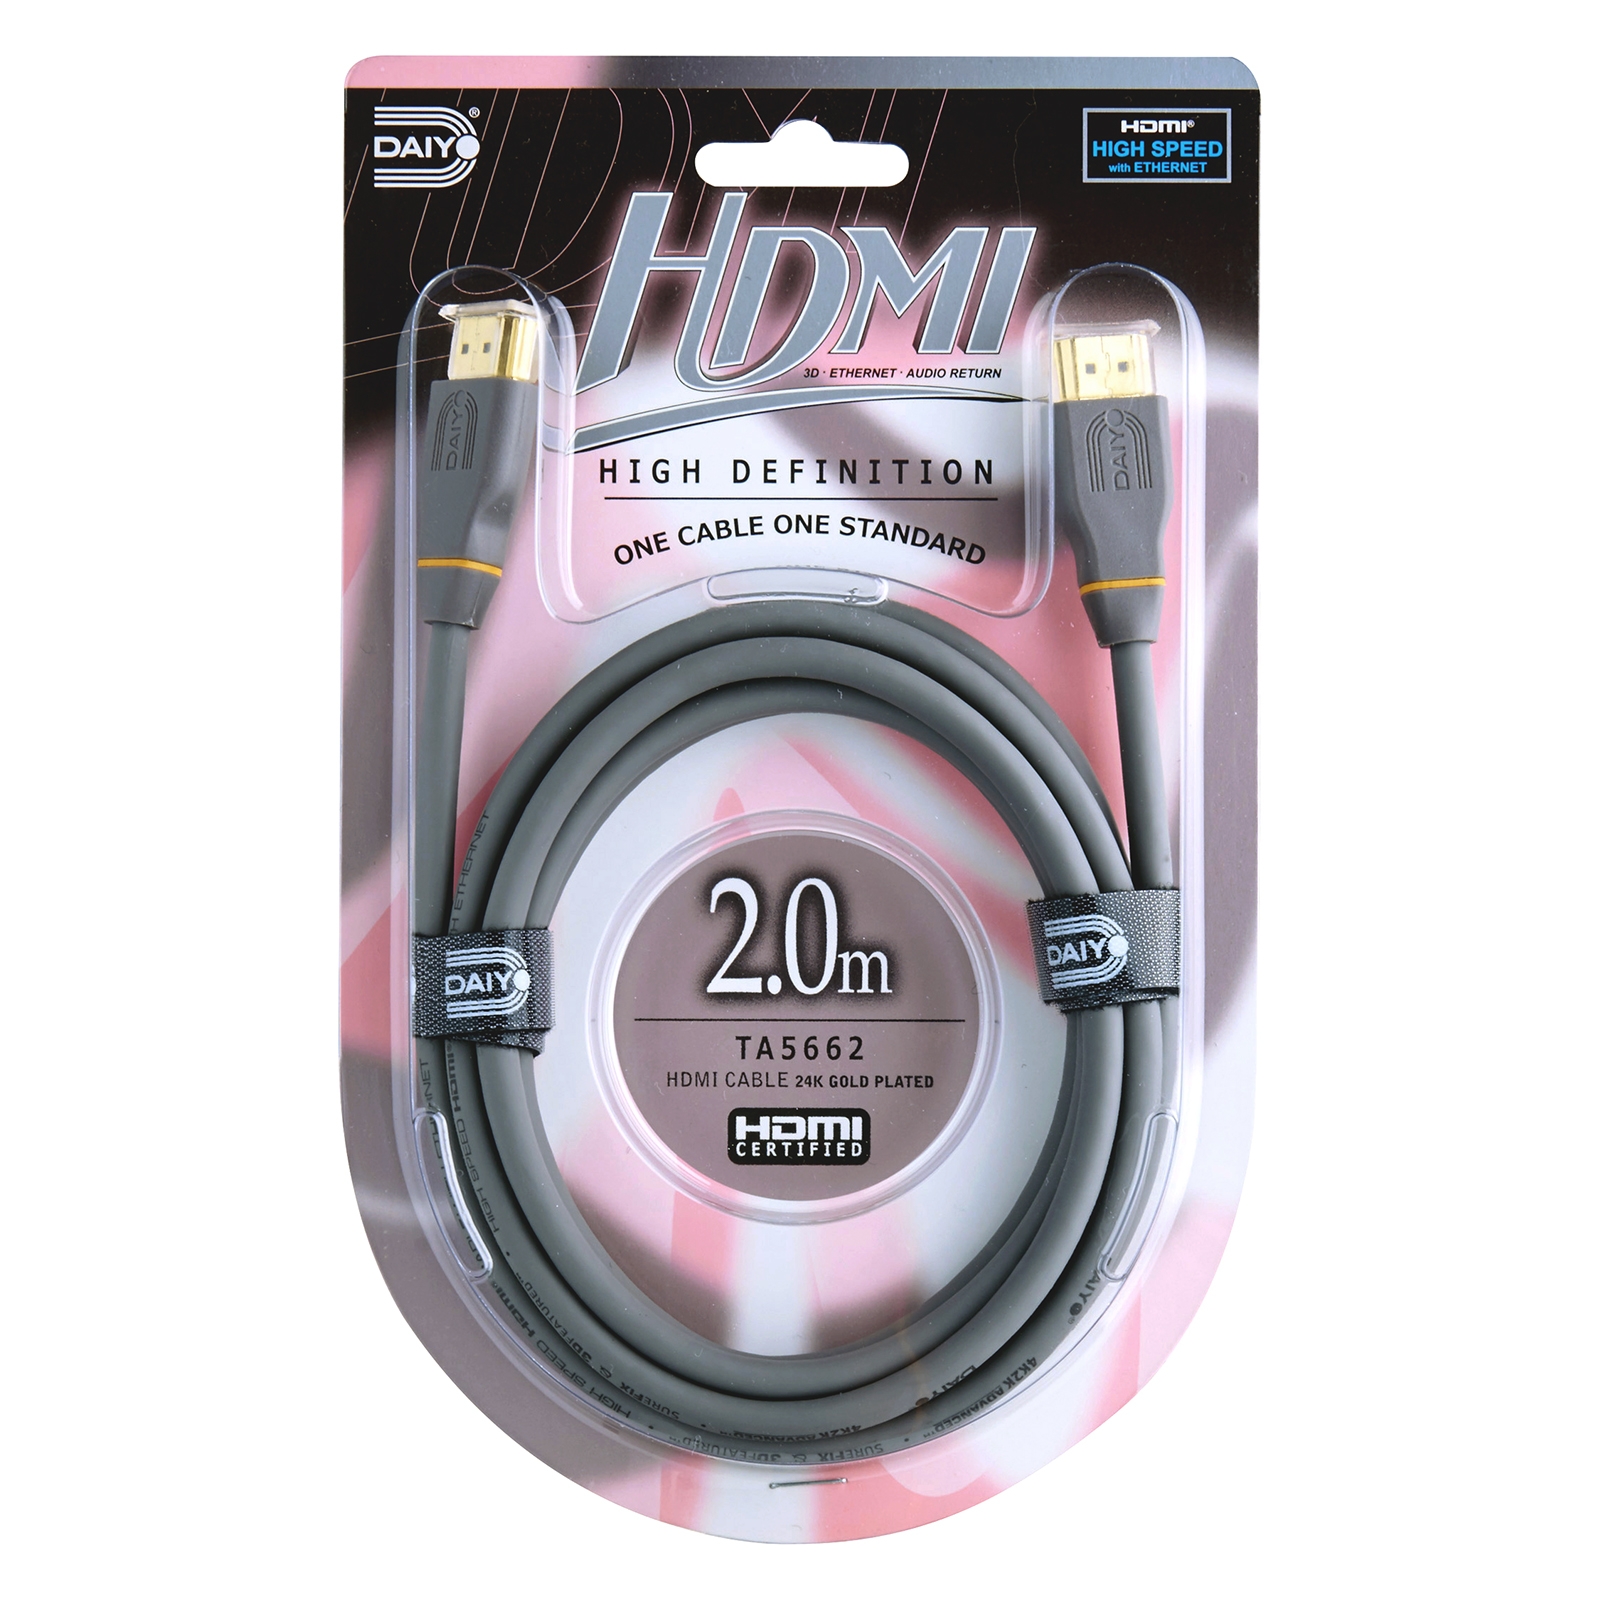 TA 5662 High Definition HDMI 4K Cable with Ethernet 2m